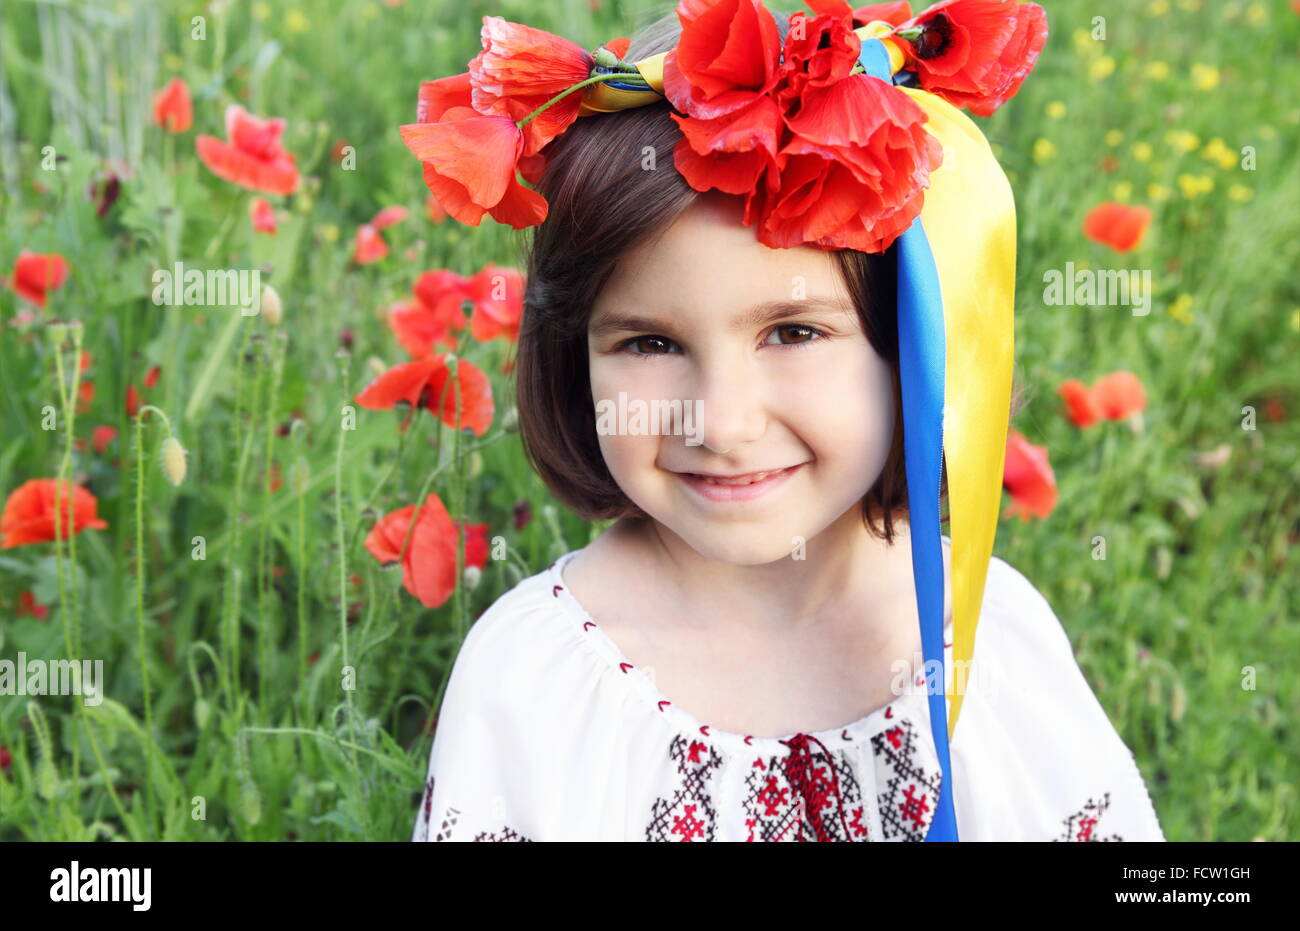 Girl on Meadow in Wreath with Yellow and Blue (Ukrainian Flag Colors) Ribbons - Stock Image